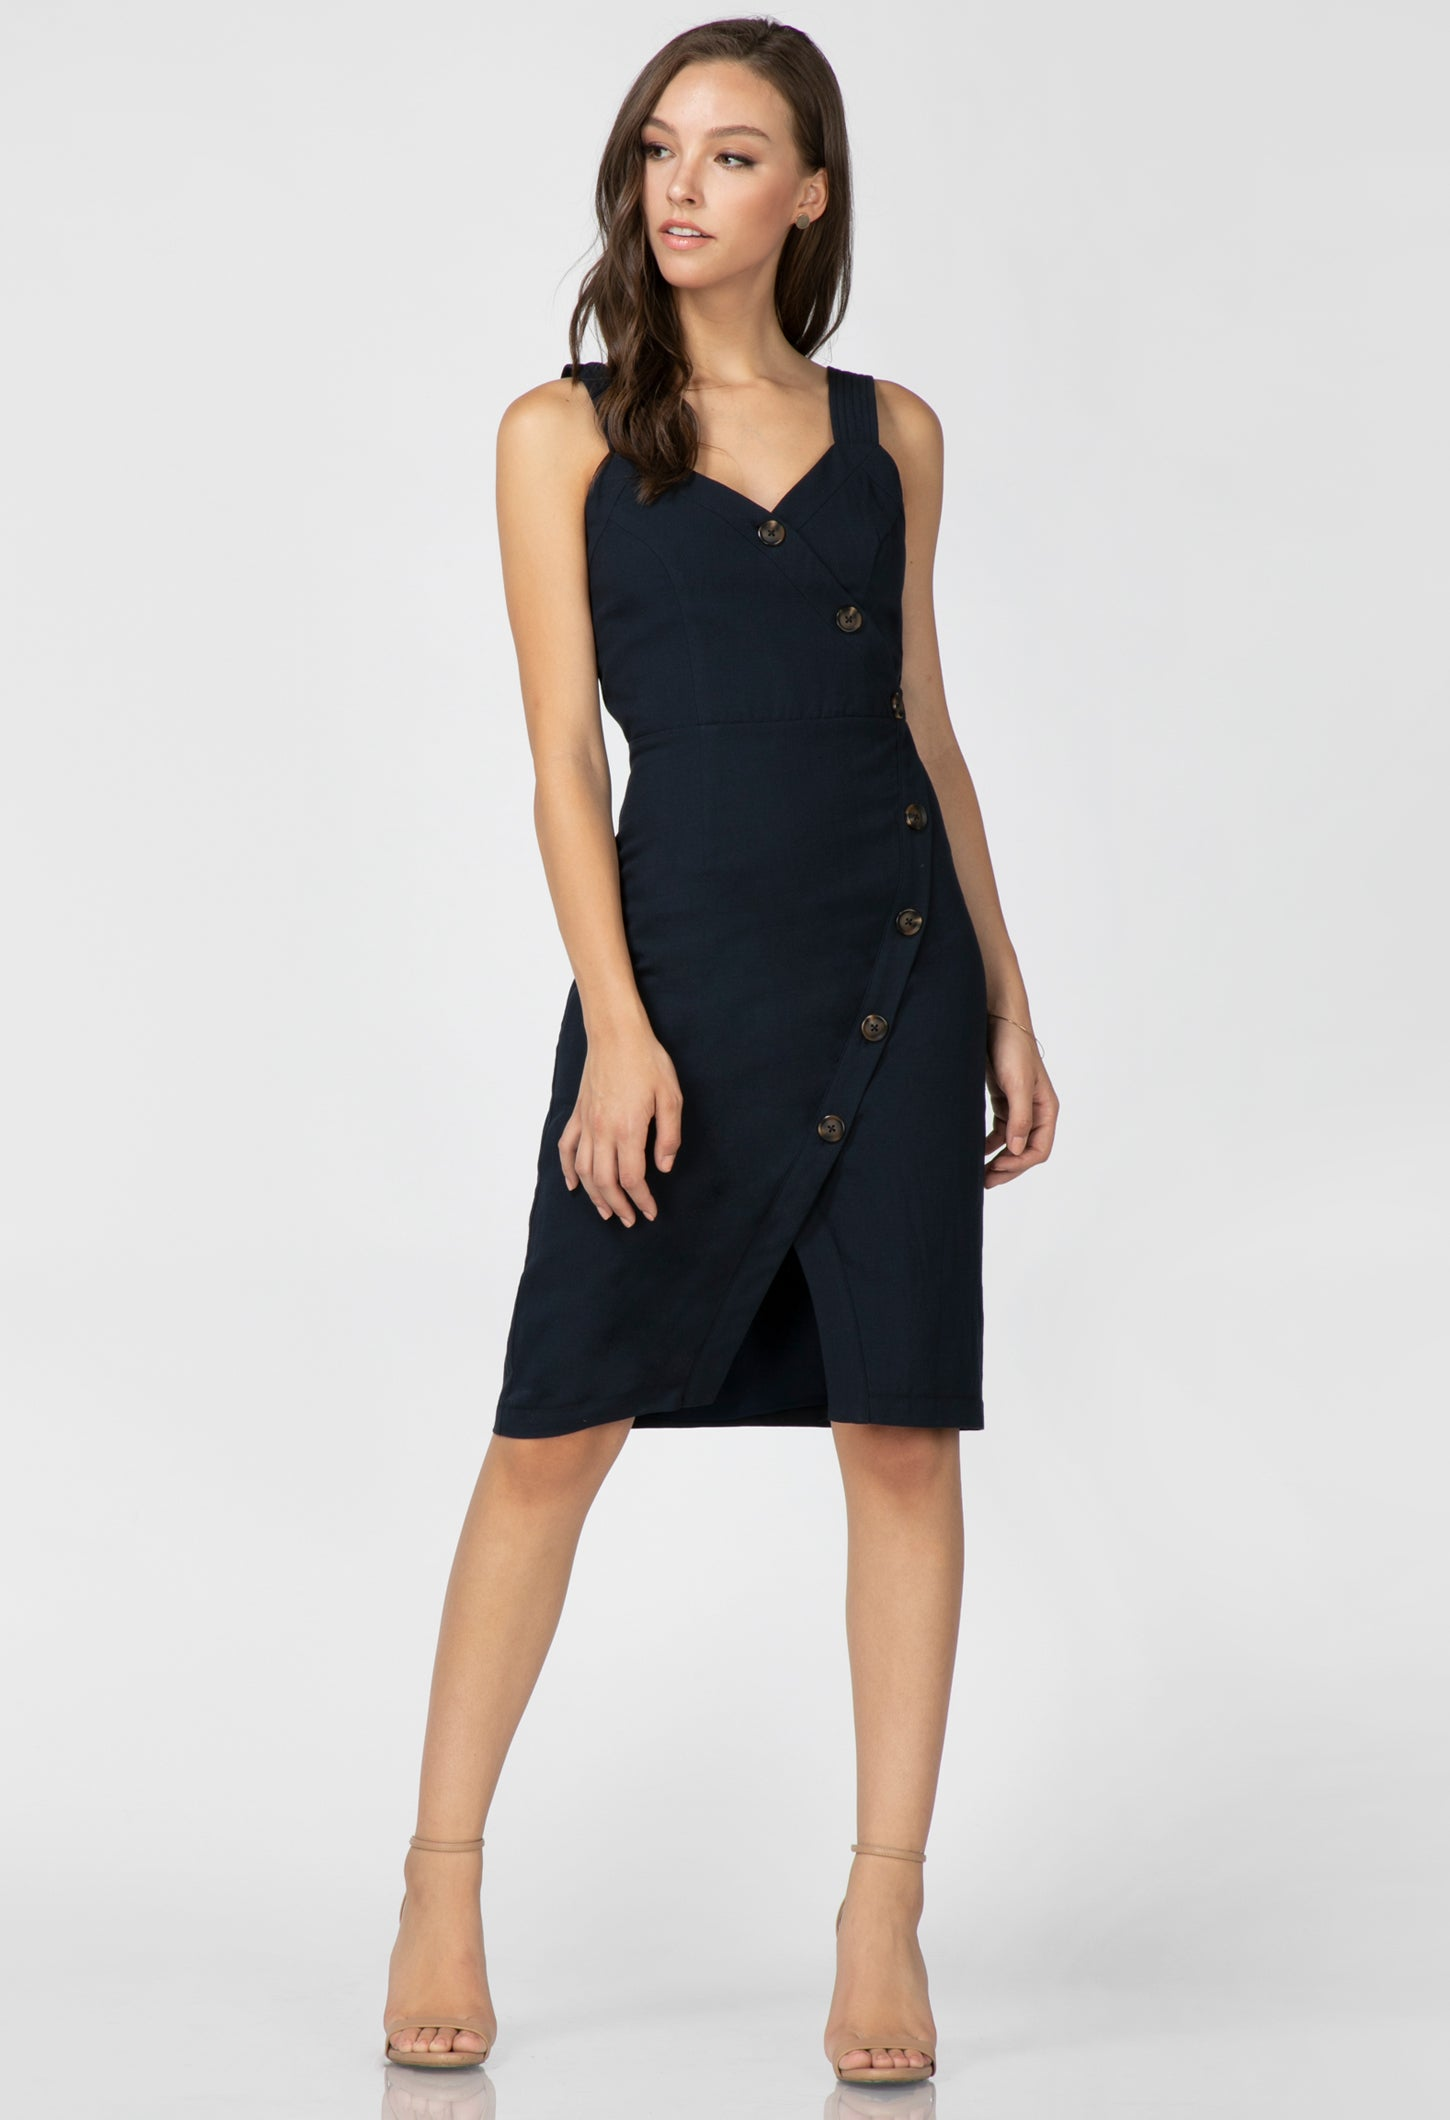 Presley Buttoned Wrap Dress